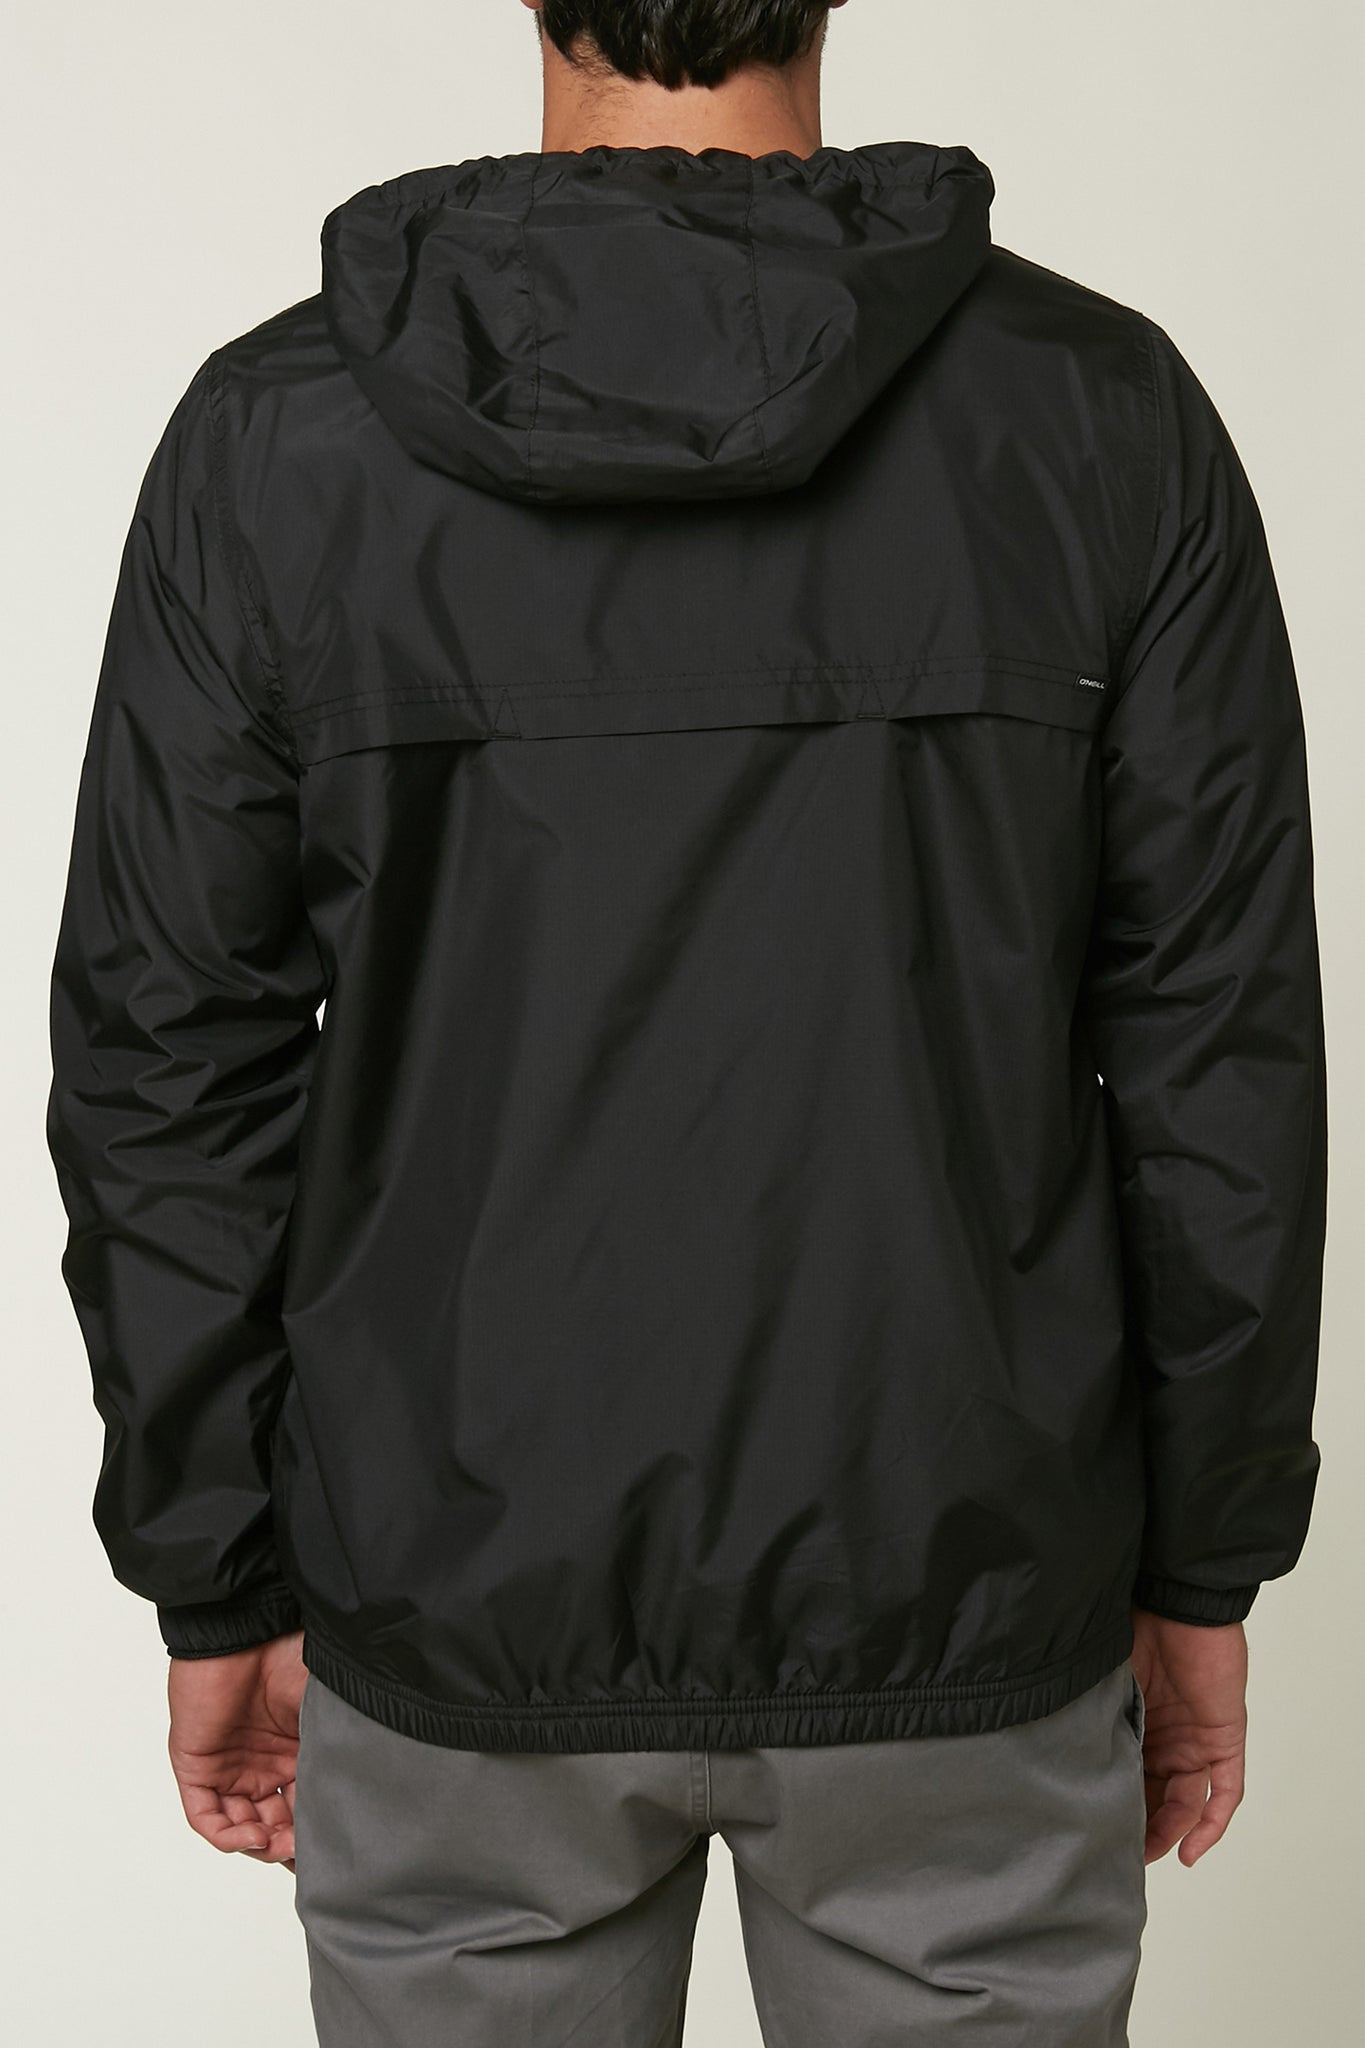 Del Ray Hyperdry Windbreaker | O'Neill Clothing USA